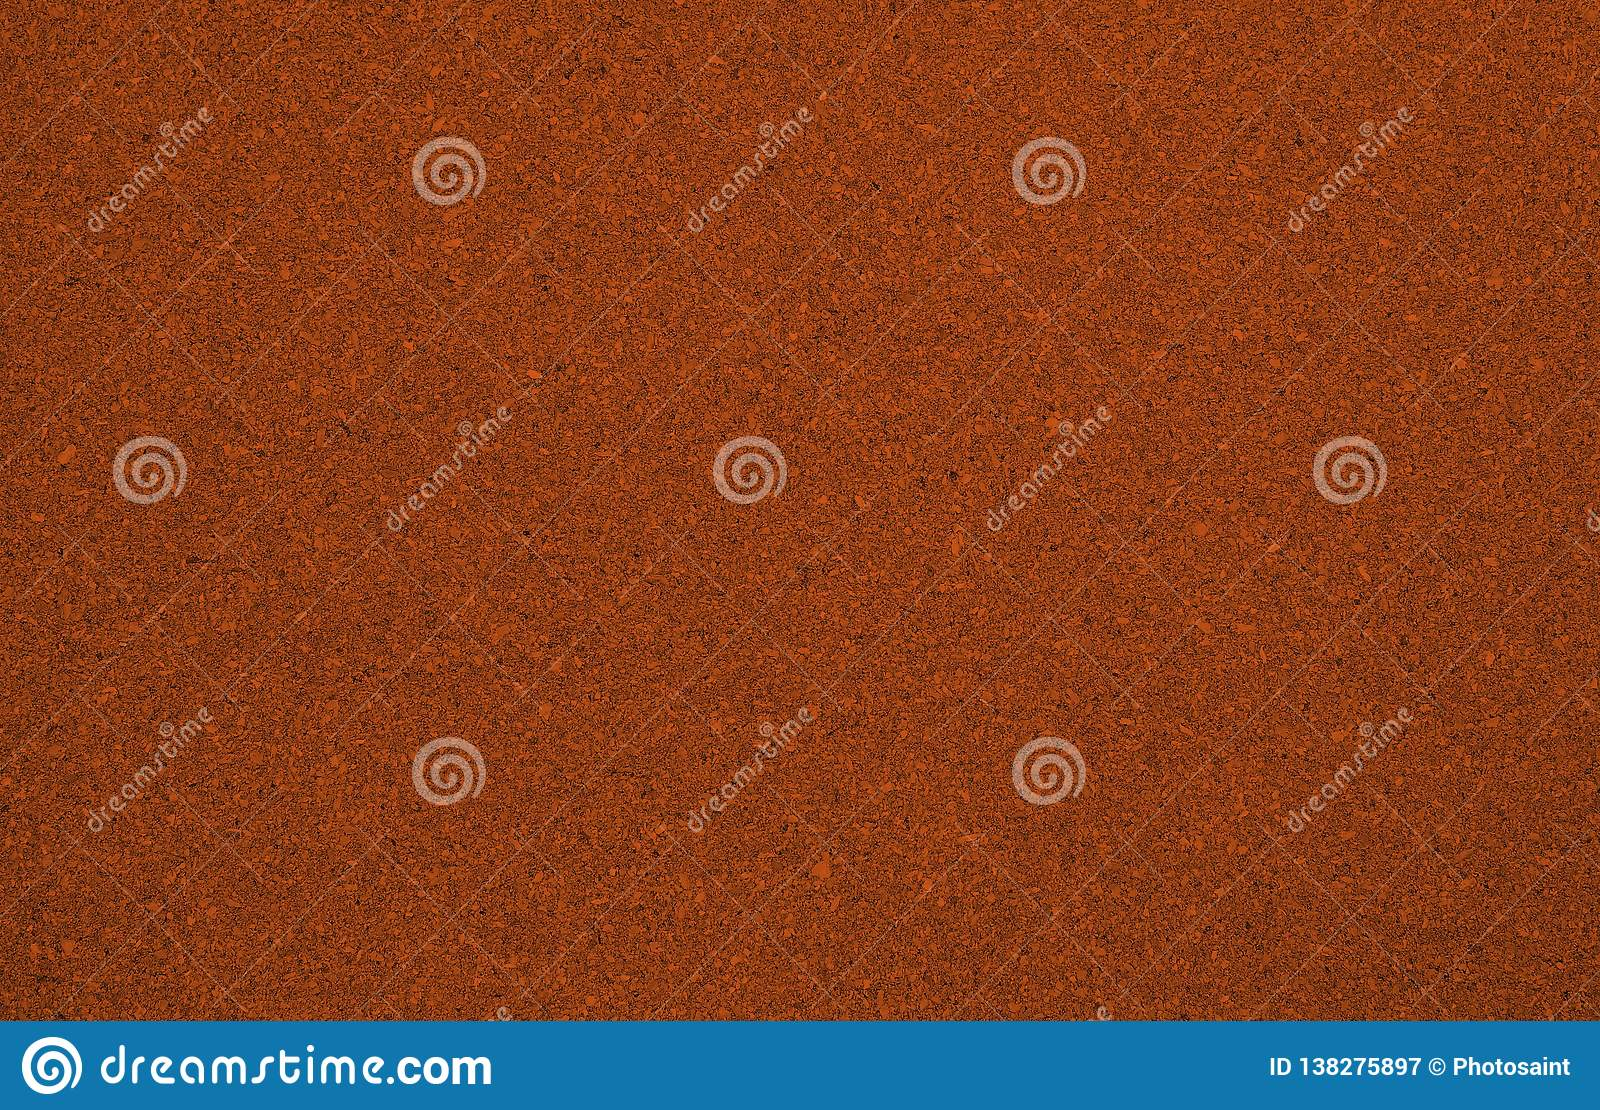 Cork texture background in colours